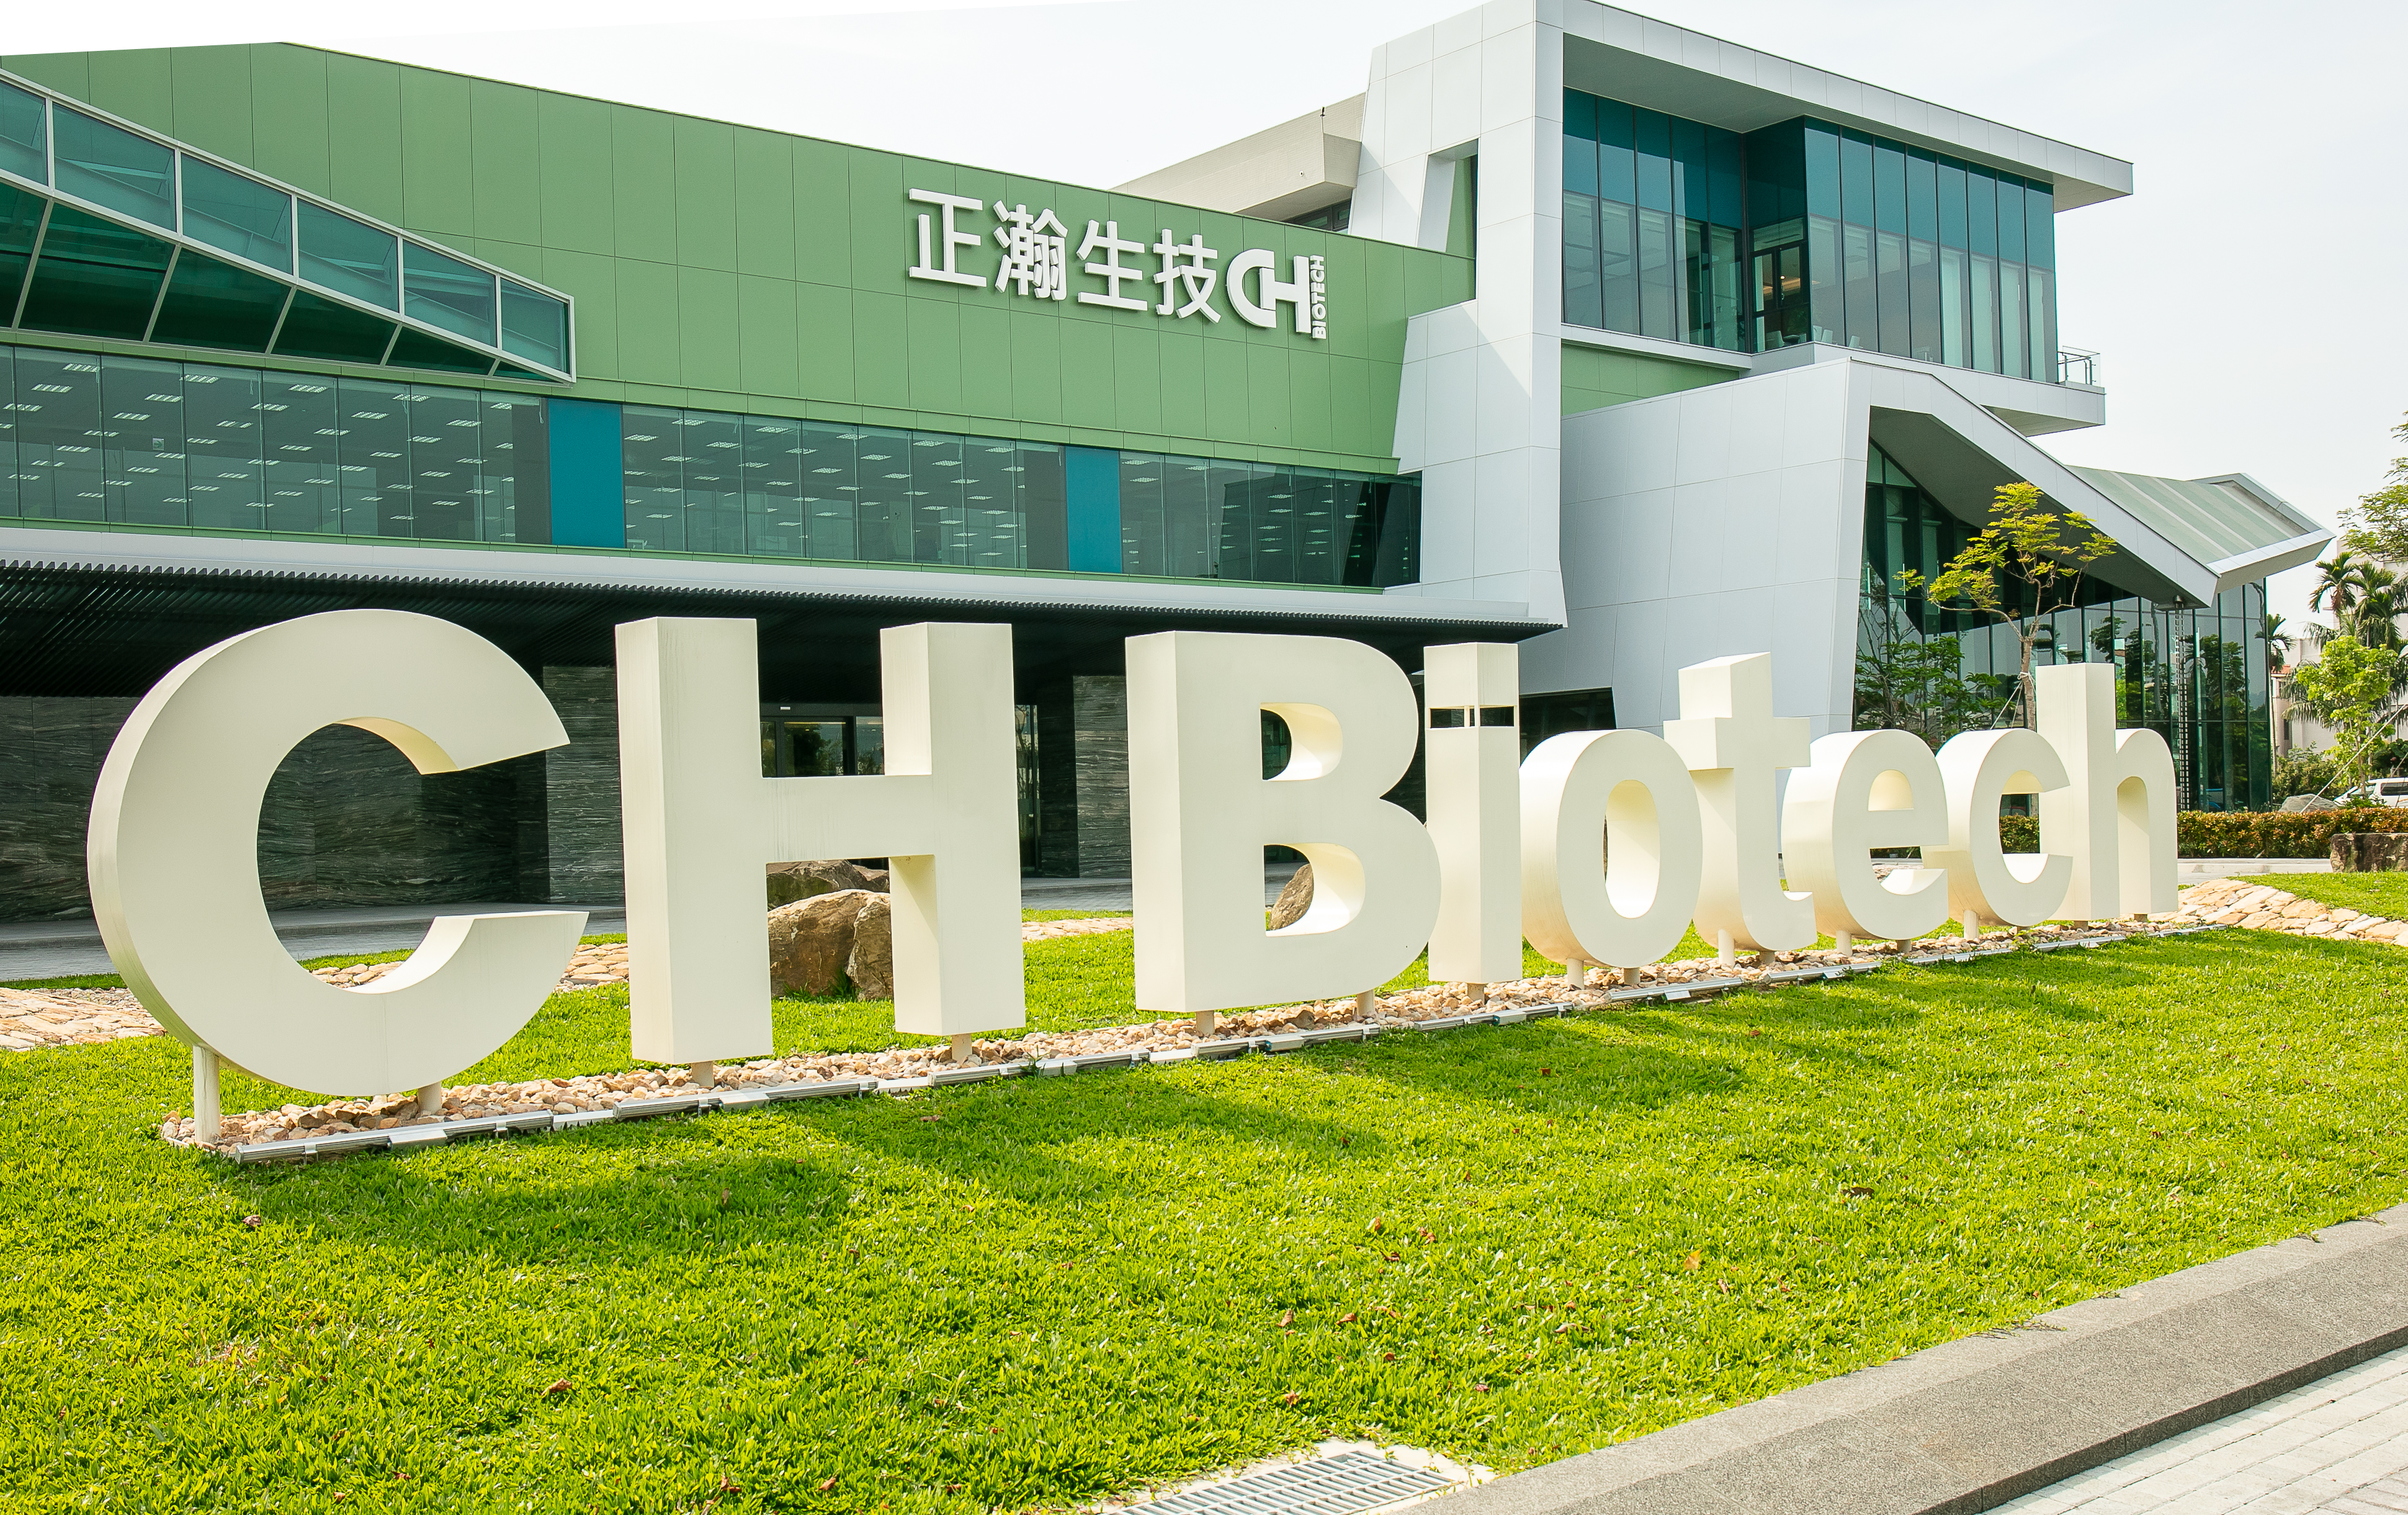 CH Biotech Headquarters and R&D Innovation Center in Taiwan